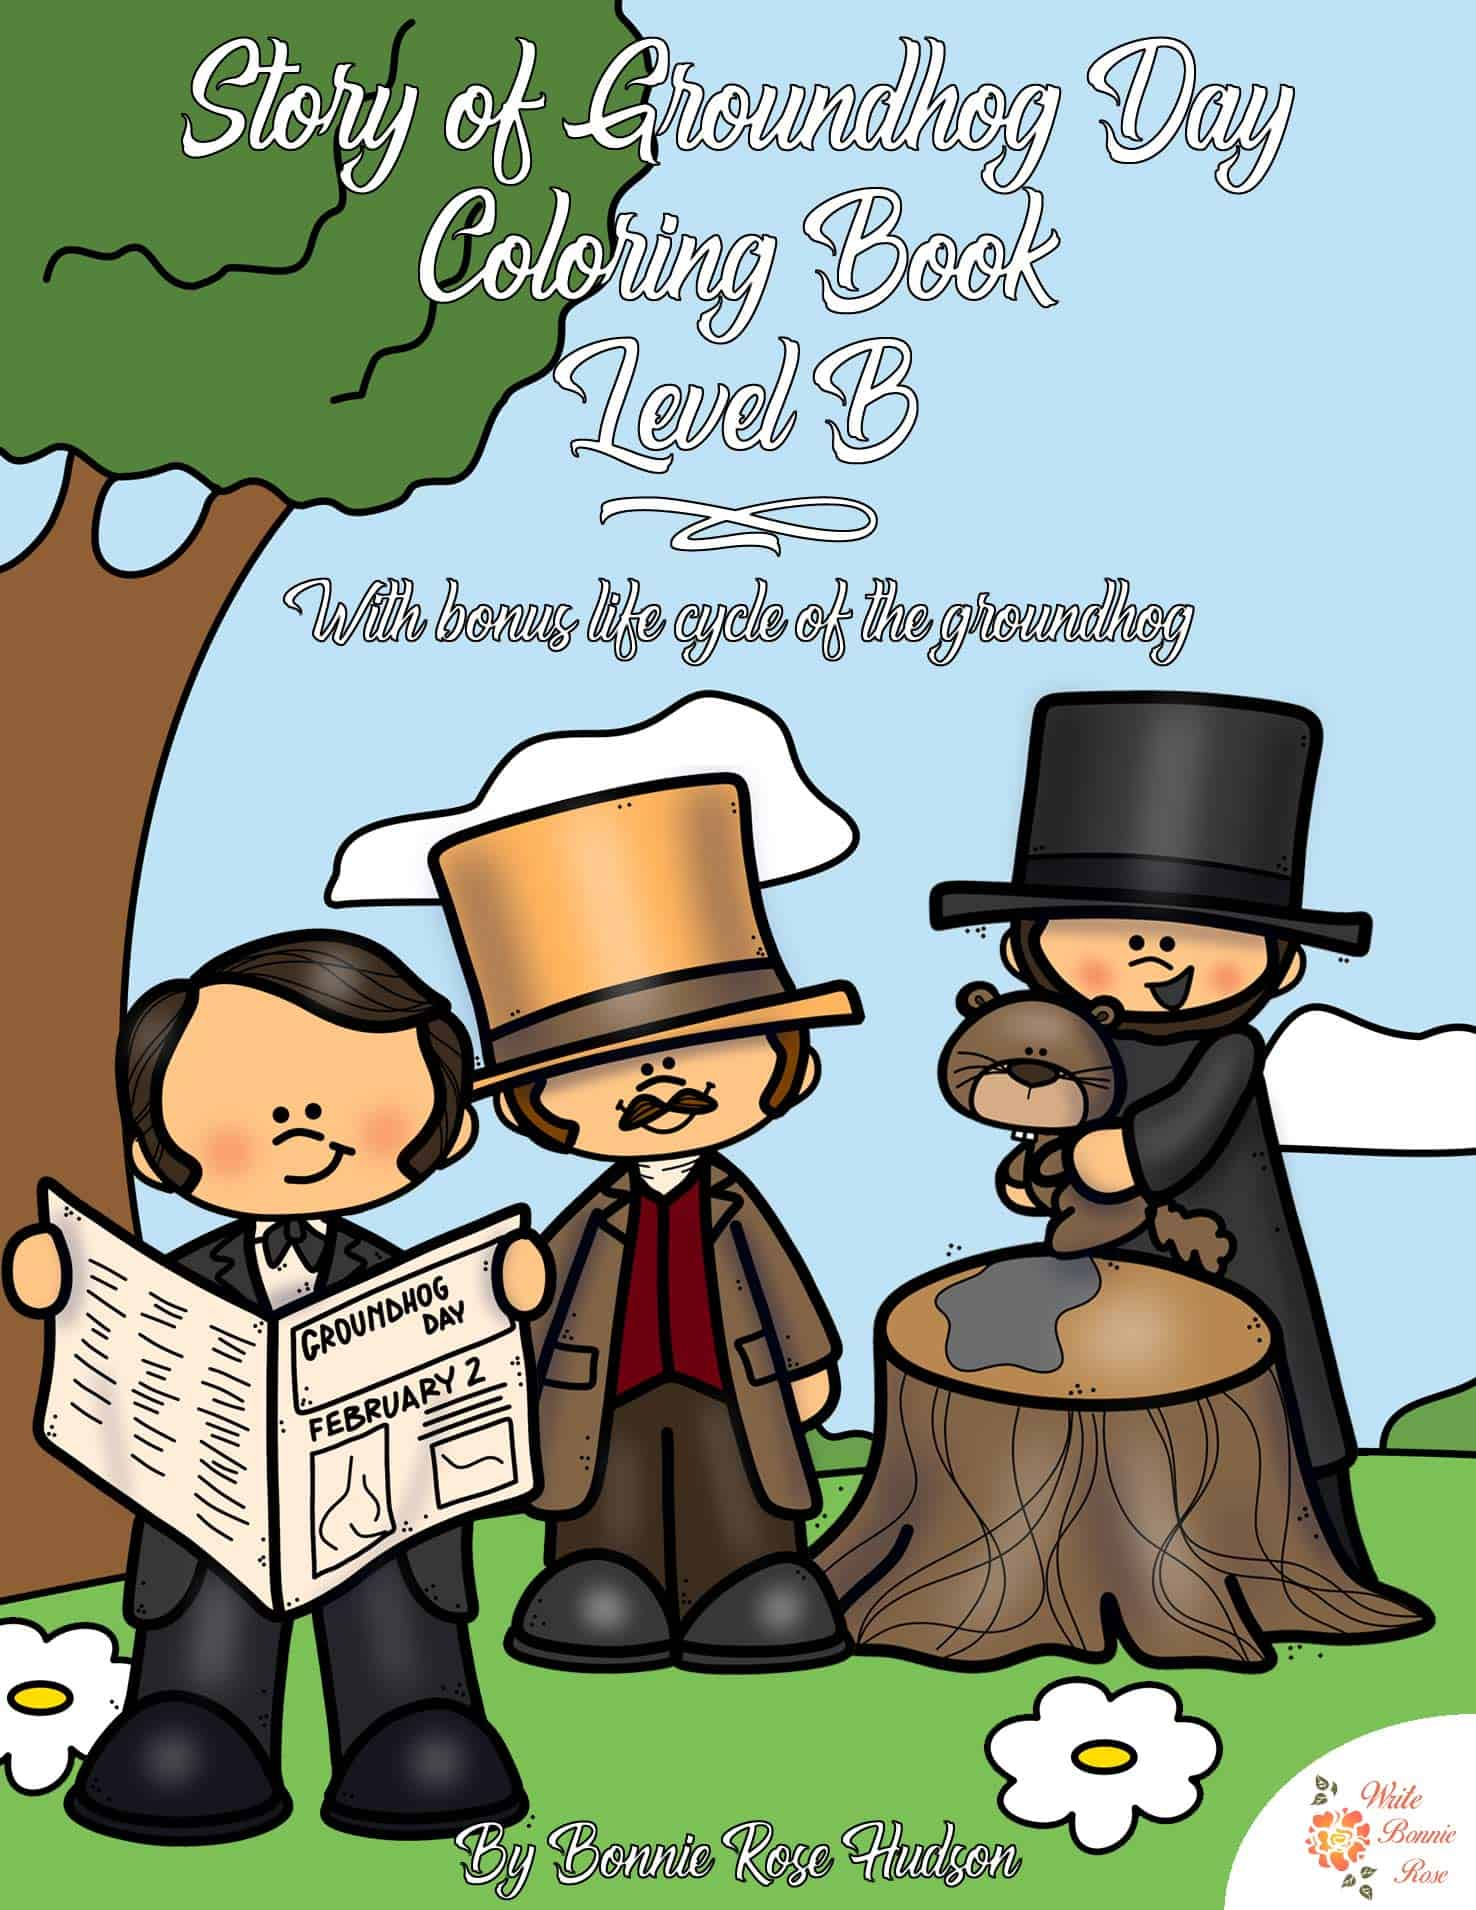 Free Story Of Groundhog Day Coloring Book